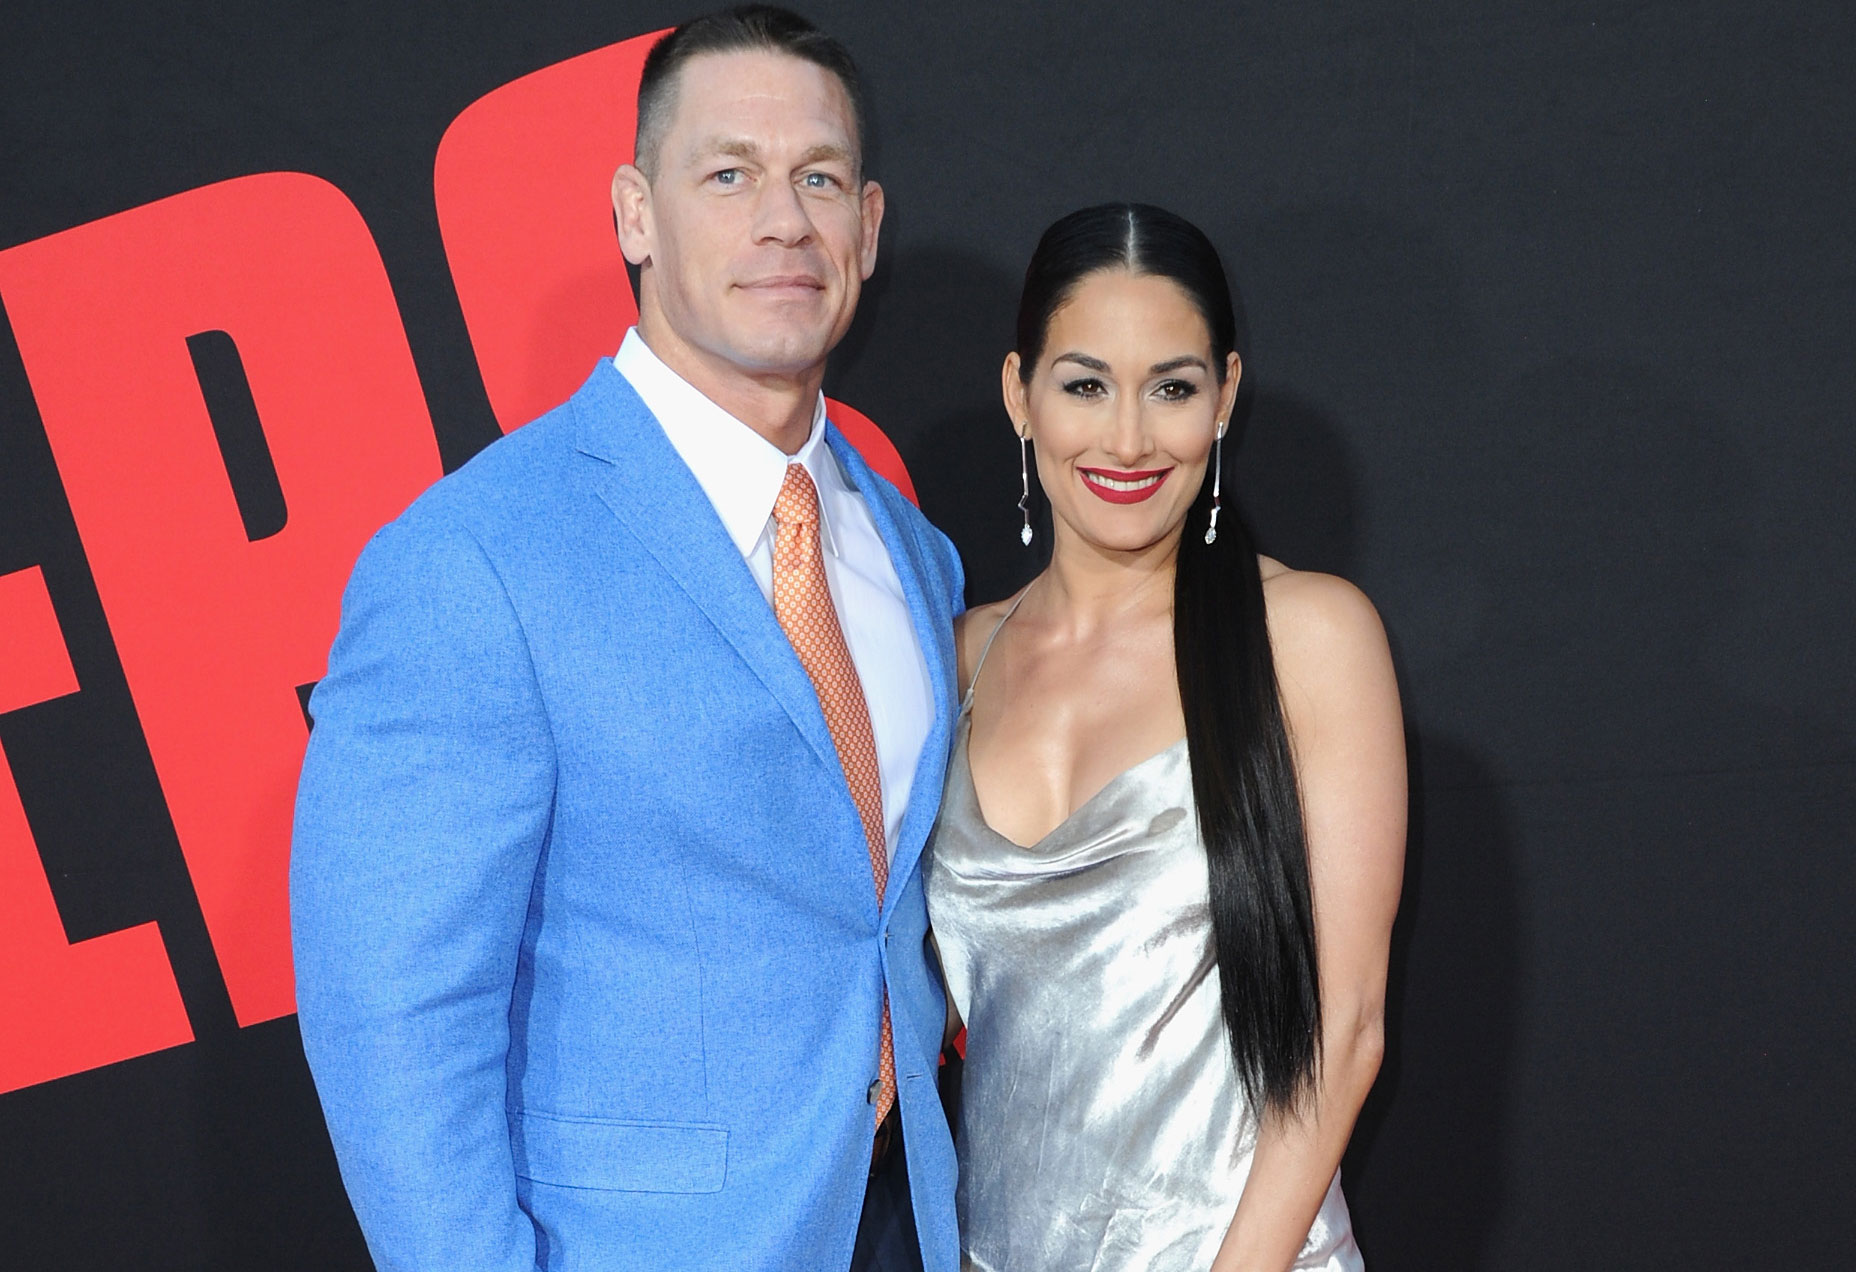 John cena nikki0bella back together